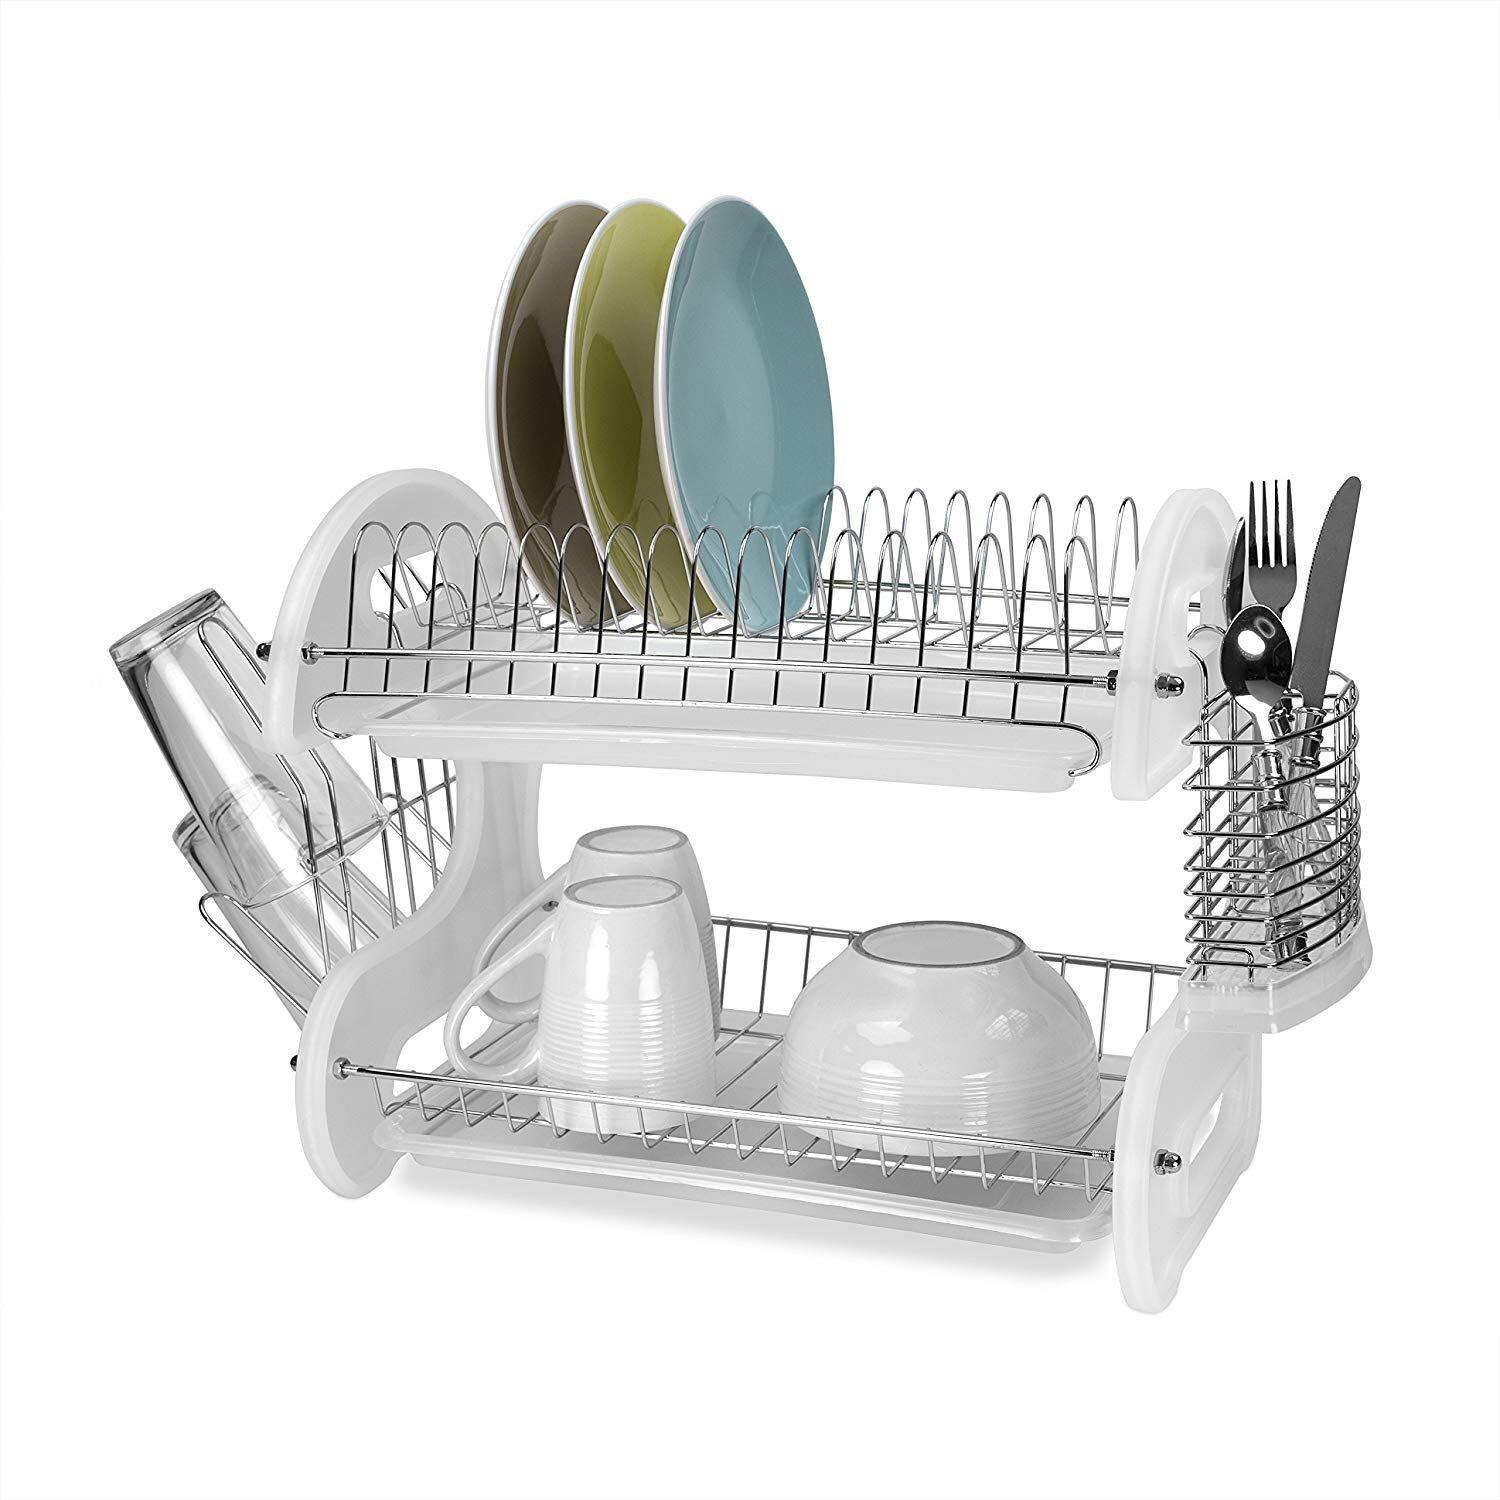 High Quality Countertop Dish Shelf Kitchen Storage Racks Applicable Space Save Rack Dish Bowl Over Sink Utensils Holder